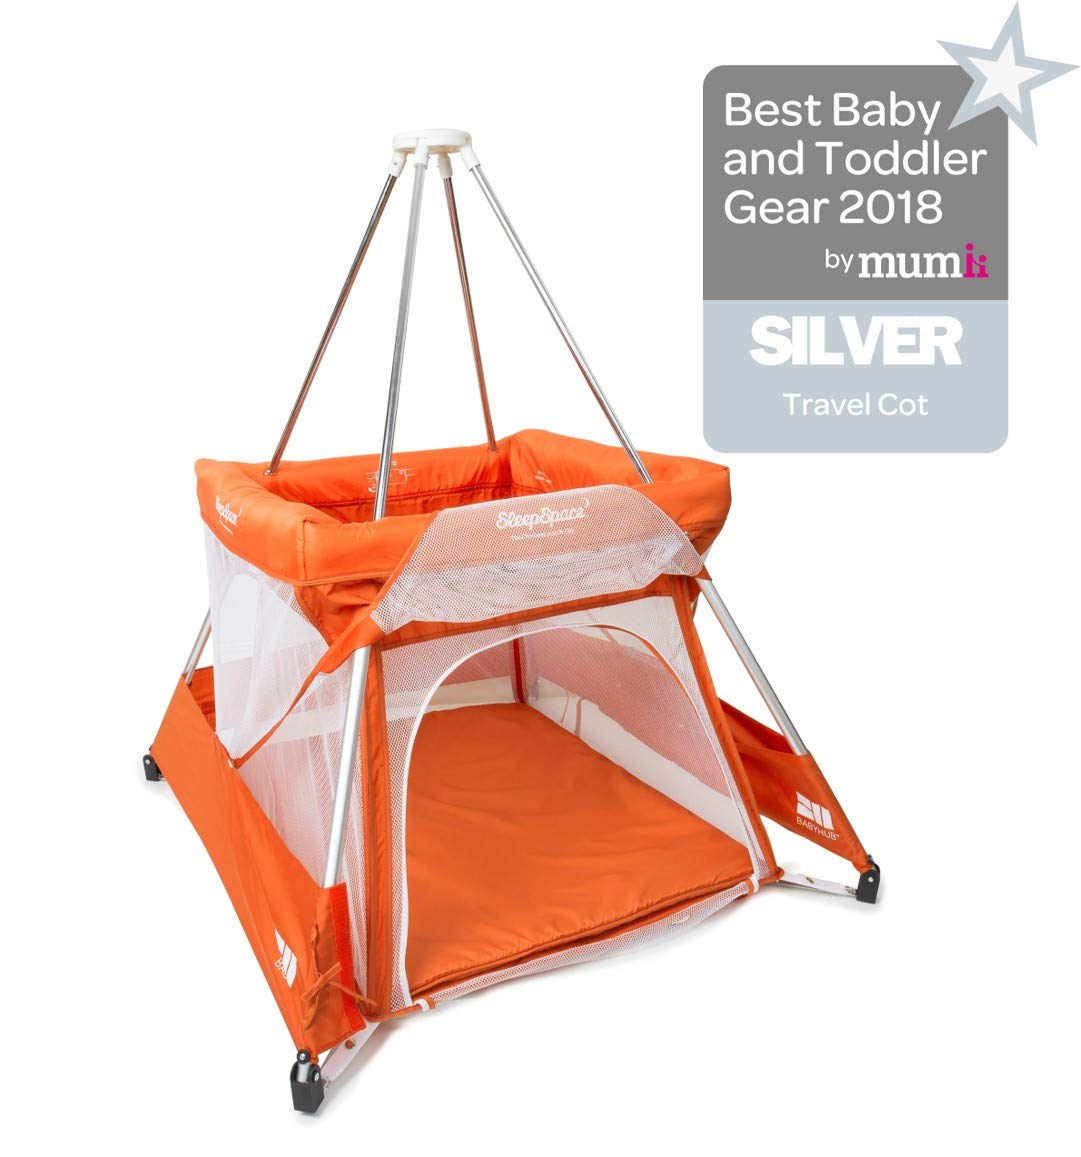 BabyHub SleepSpace Travel Cot with Mosquito Net, Orange BabyHub Three cots in one; use as a travel cot, mosquito proof space and reuse as a play tepee Includes extra mosquito net cover that can be securely in place Can be set up and moved even while holding a baby 1